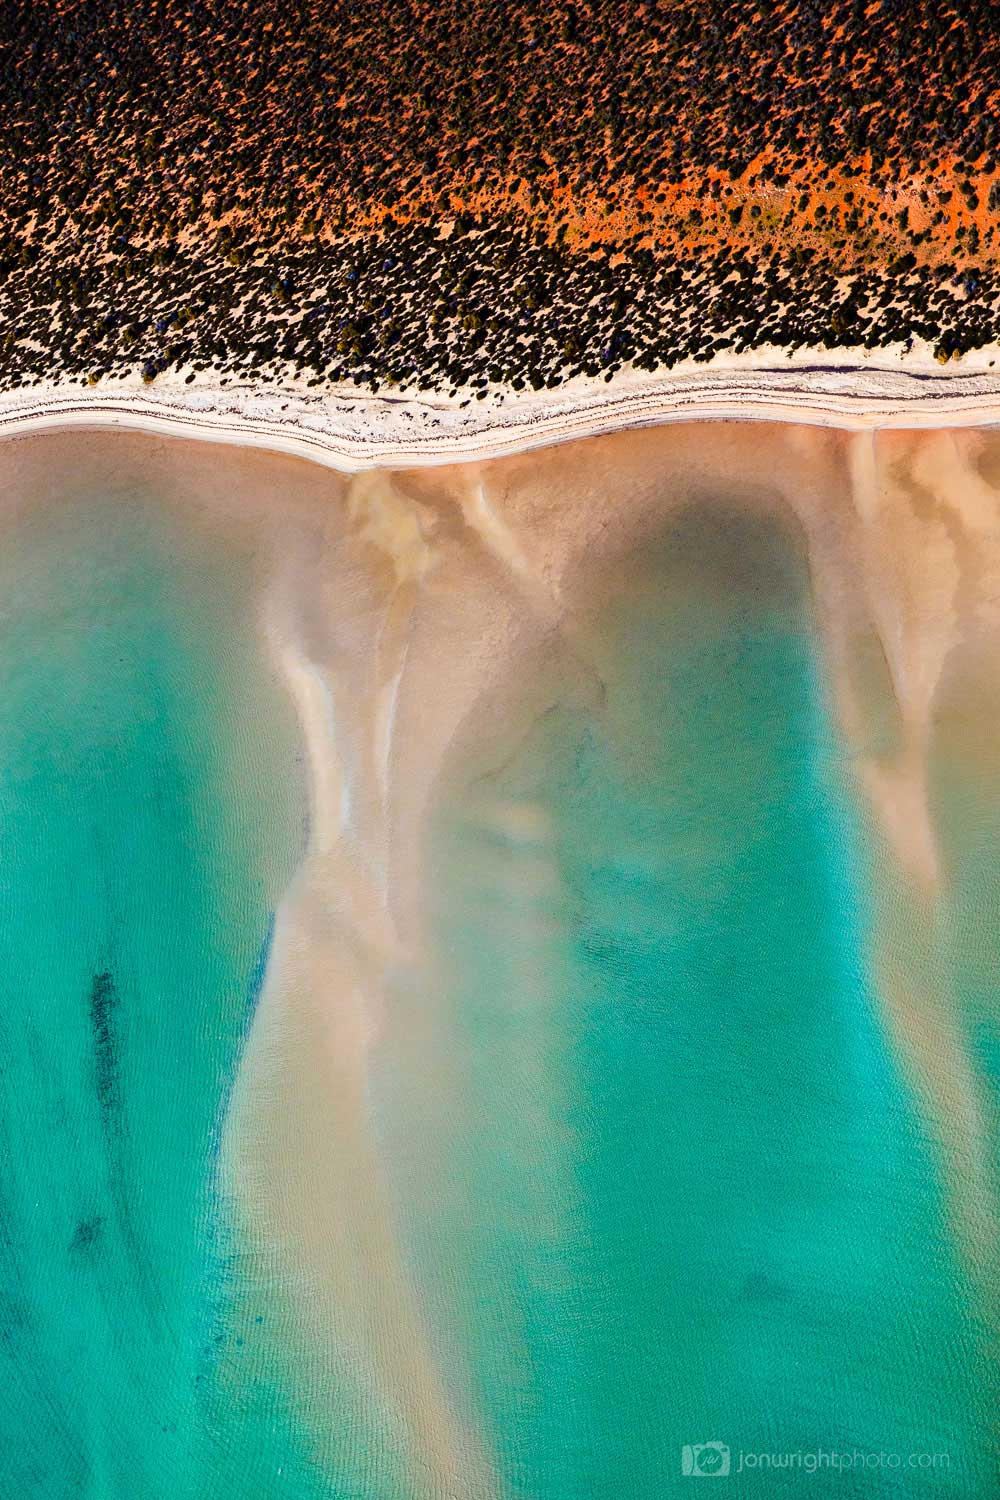 Red and Turquoise aerial abstract image of ocean